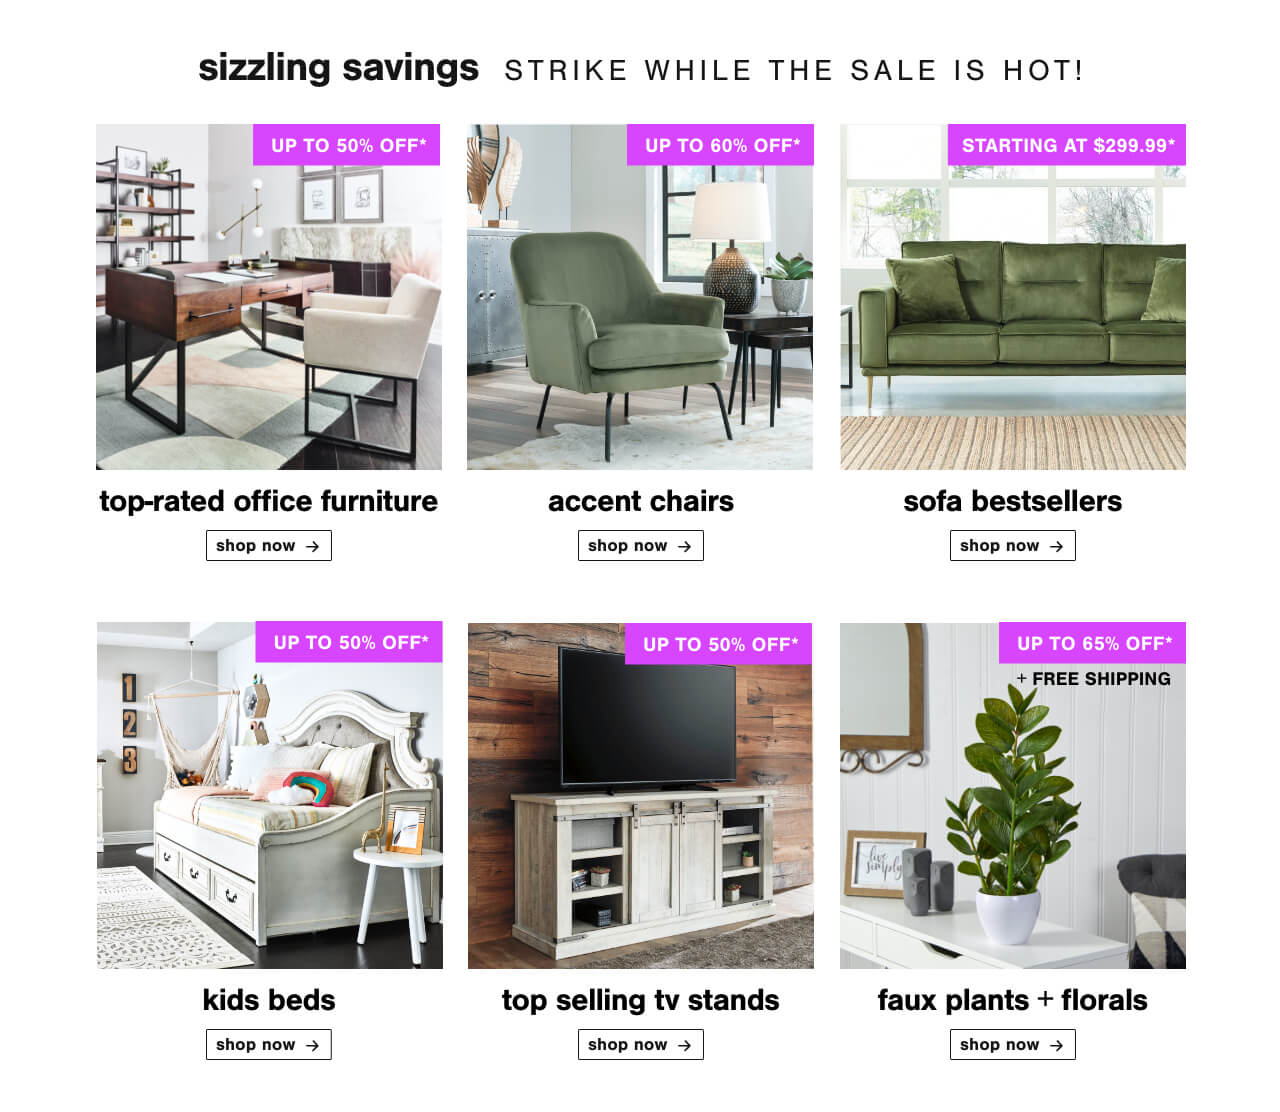 Top-rated Office Furniture up to 50% Off ,Accent Chairs Up To 60% Off,Our Favorite Sofas for Less! Sofas starting at $299.99, Kids Beds Up to 50% Off, Top Selling TV Stands Up to 50% Off,Faux Plants & Florals up to 60% Off + Free shipping!